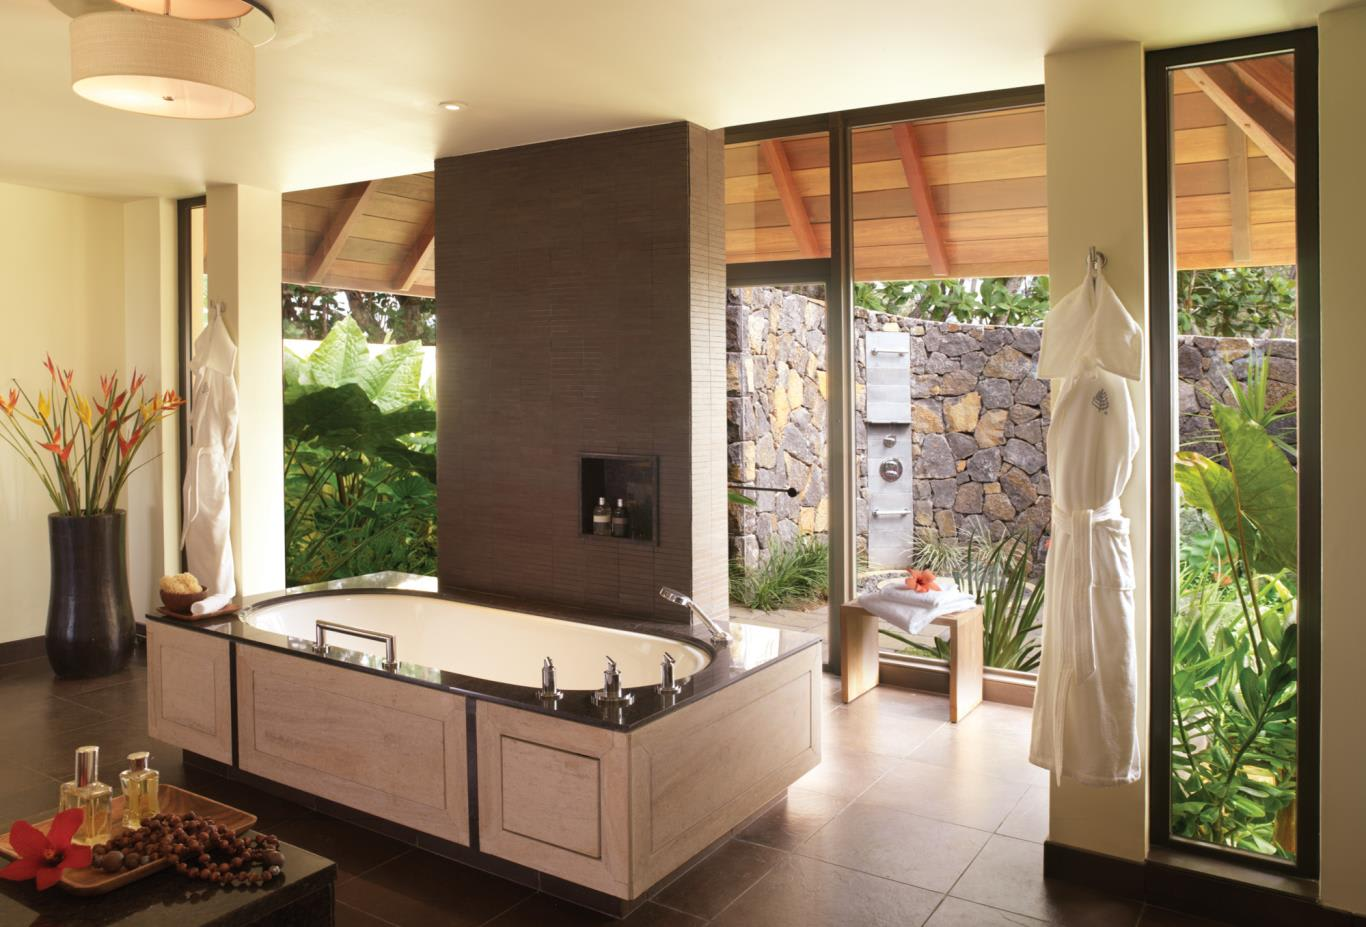 Villa - Beach or Ocean or Garden interior bathroom